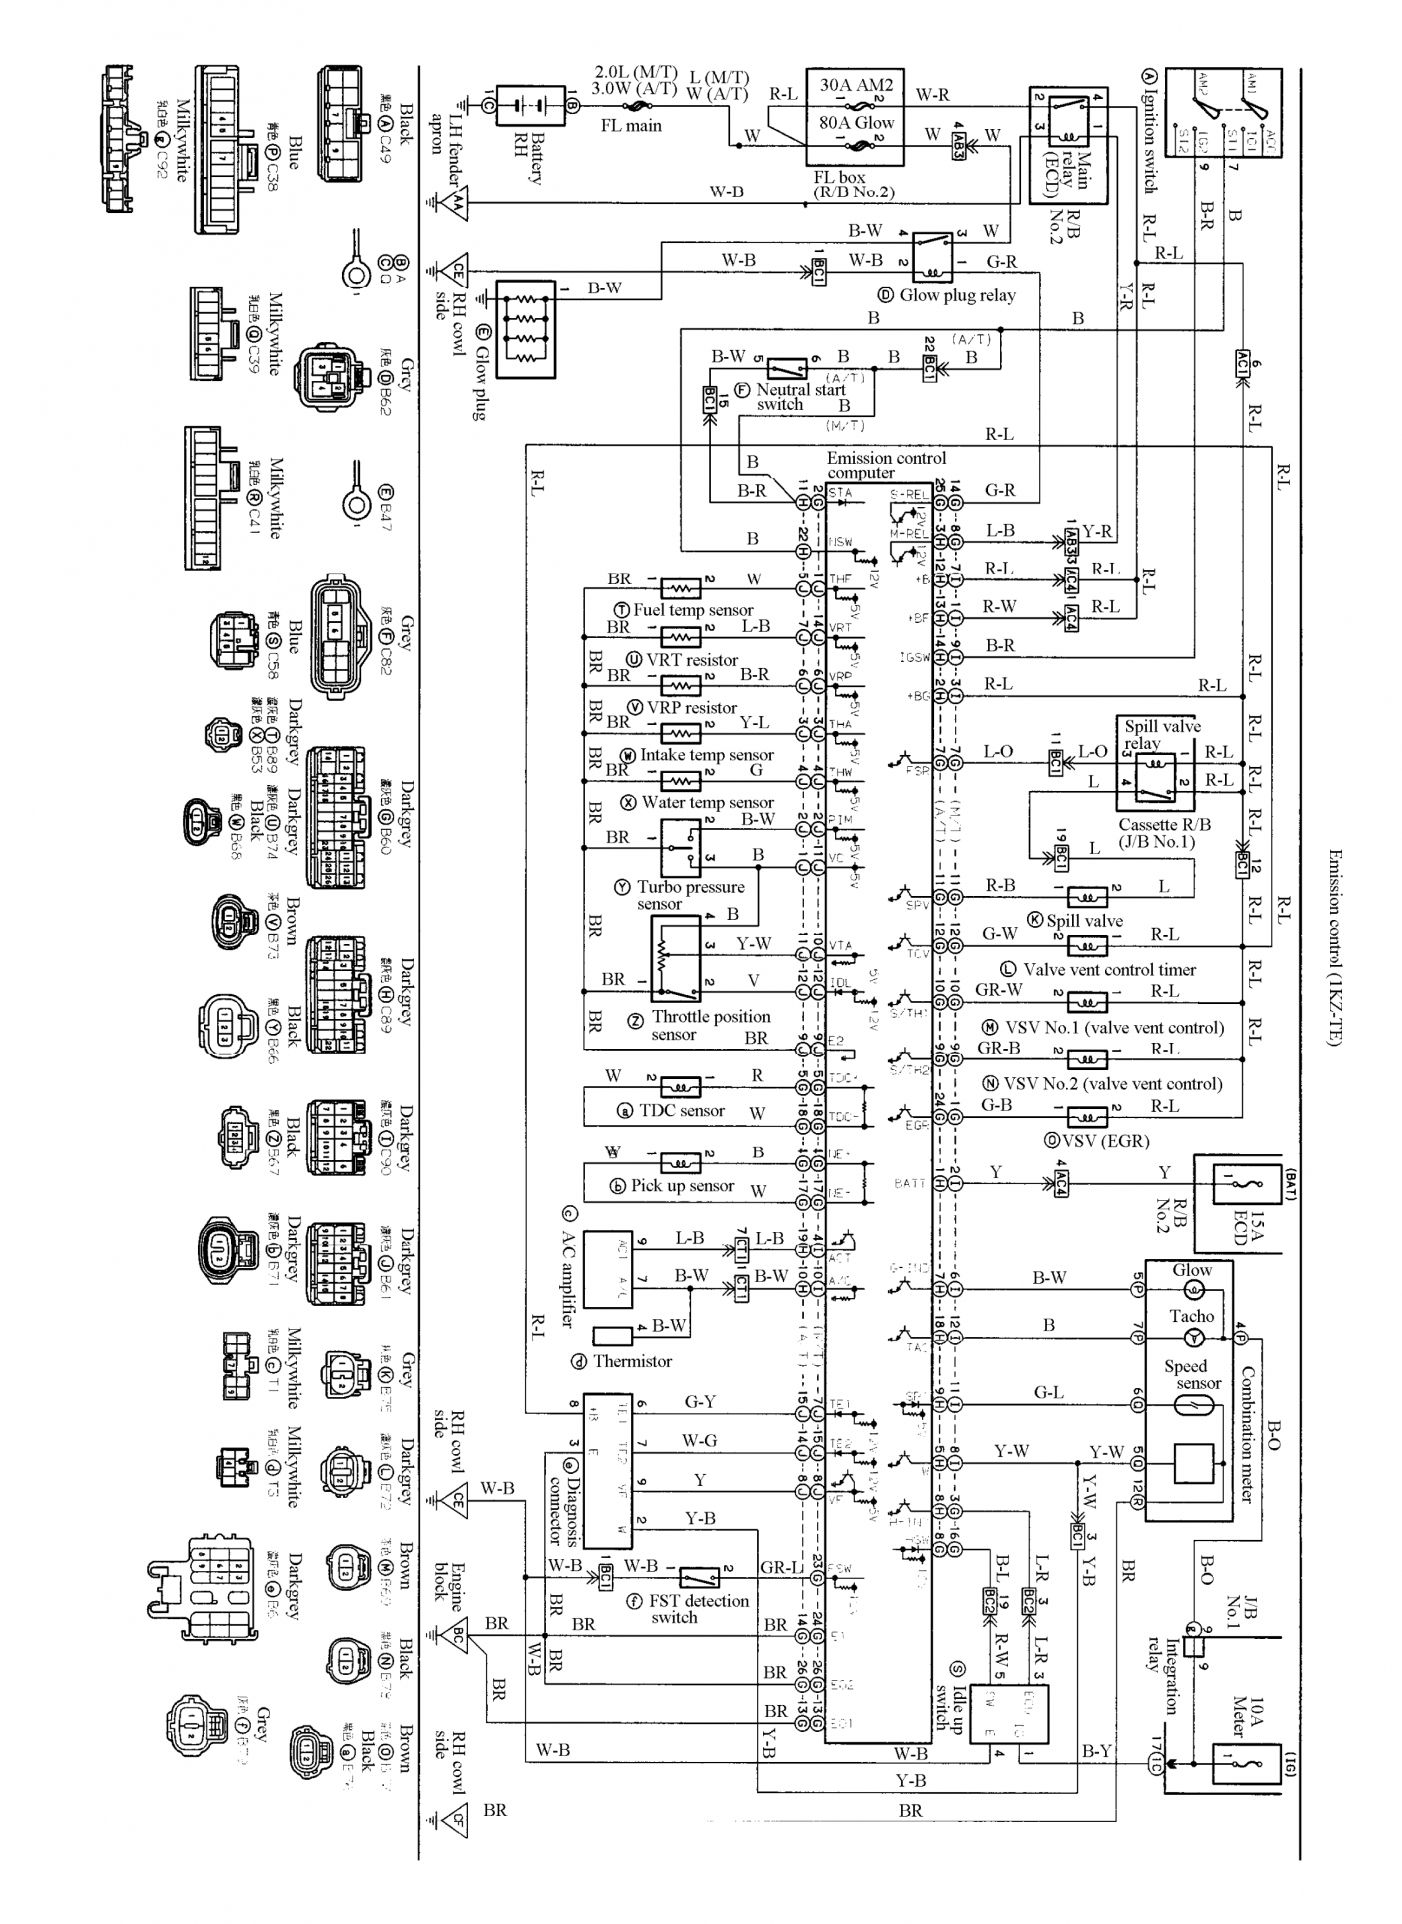 toyota surf wiring diagram - wiring diagrams data work-solution -  work-solution.ungiaggioloincucina.it  ungiaggioloincucina.it